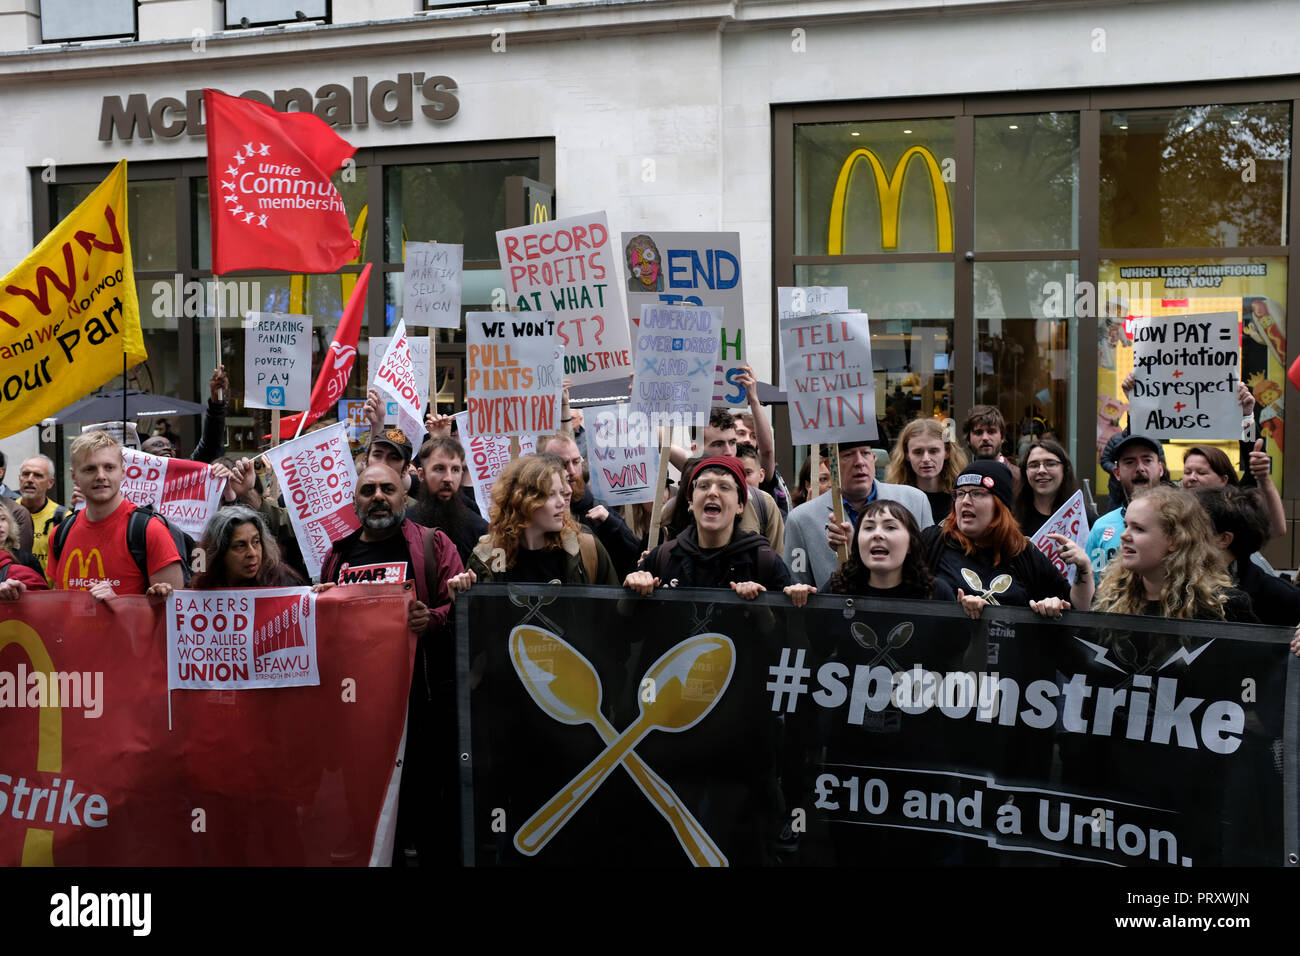 Protesters seen holding banners and flags outside Mc Donalds during the protest. Wetherspoons, TGI Fridays, and McDonald's workers rally together in London to demand better working conditions and a fair pay in the hospitality industry. - Stock Image